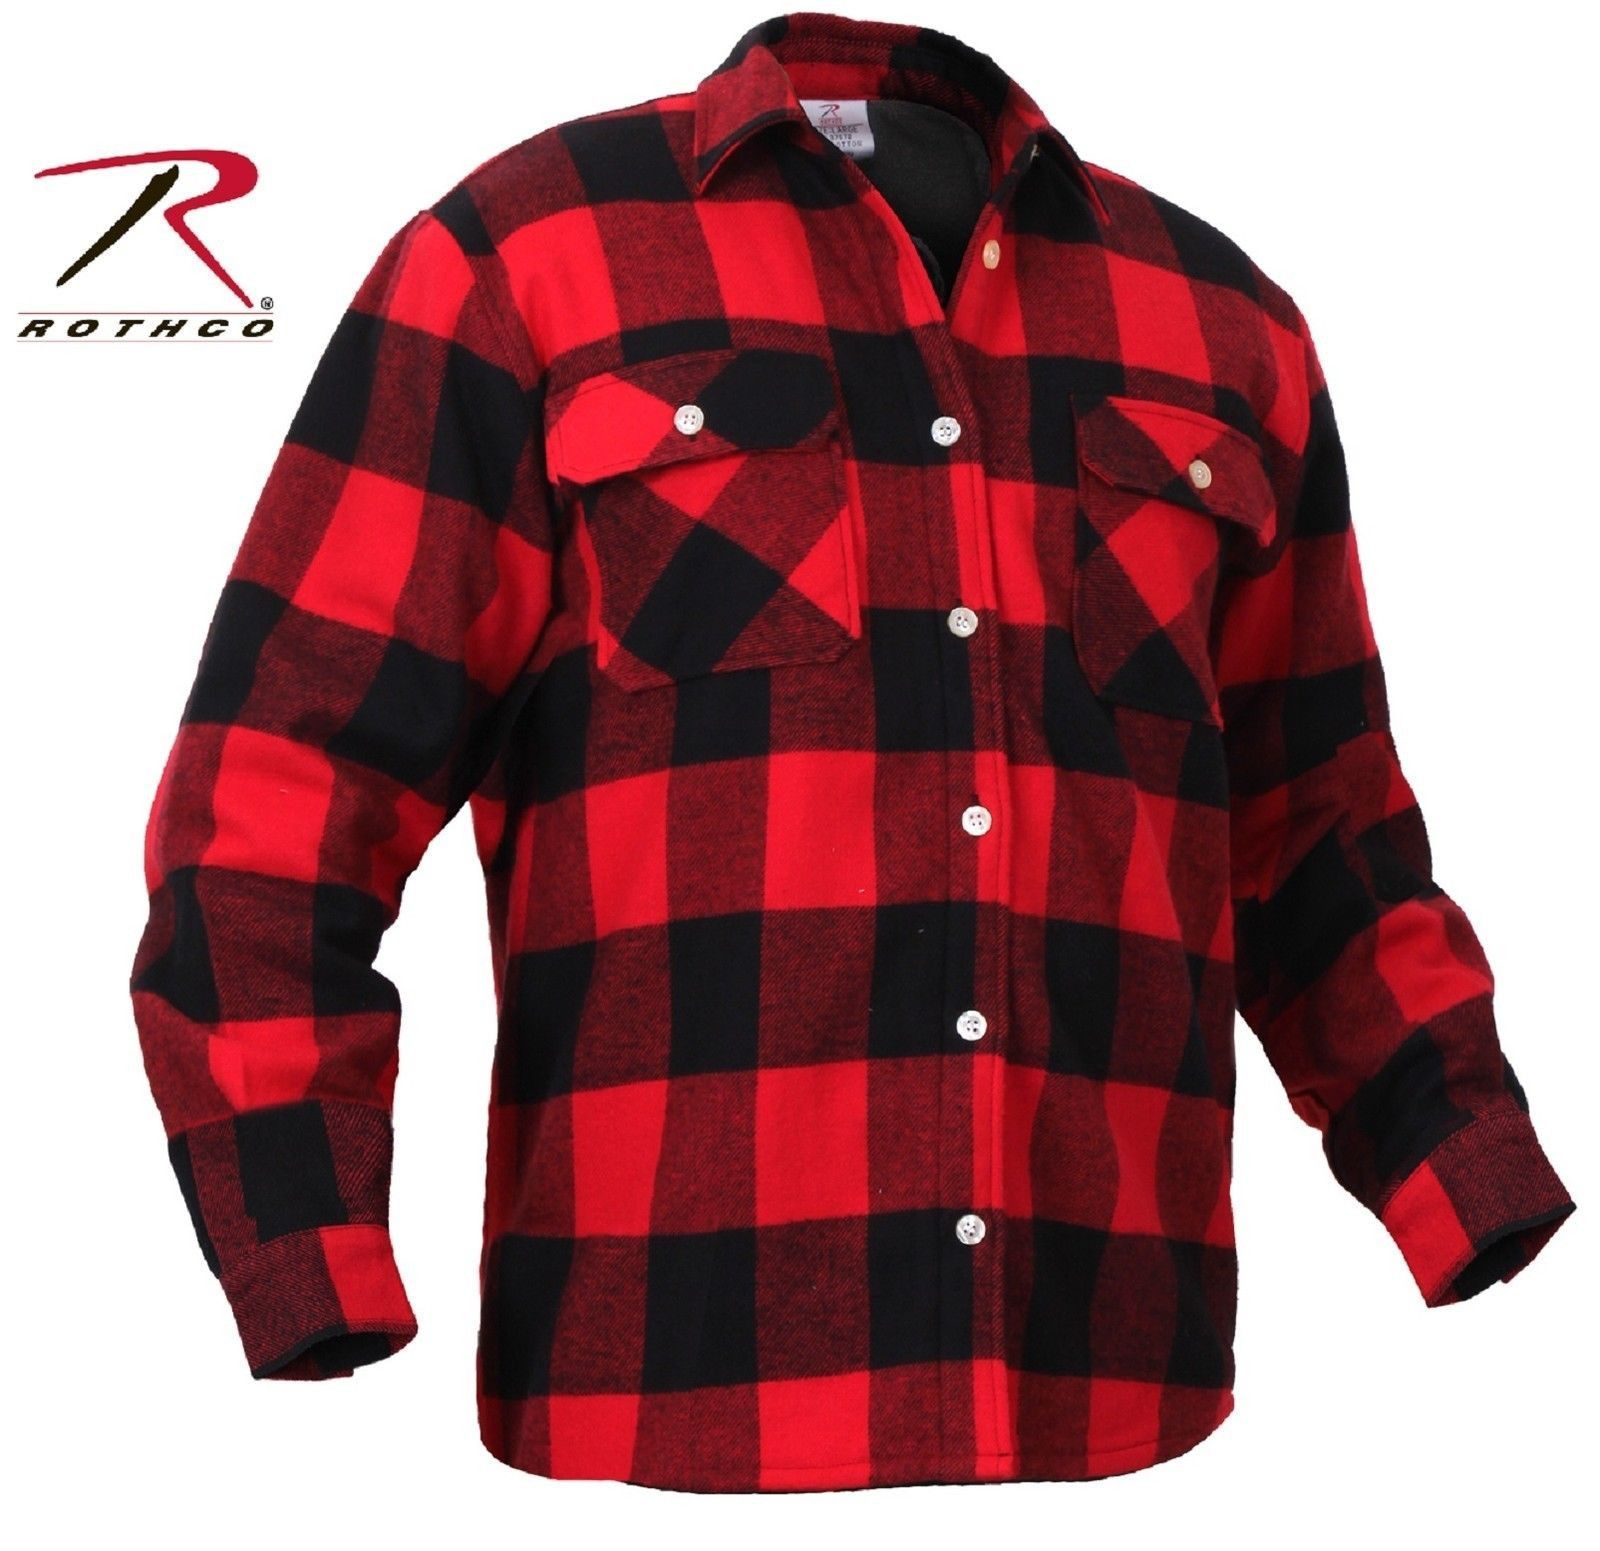 Mens Fleece-Lined Plaid Flannel Shirt - Rothco Red & Black Cotton ...